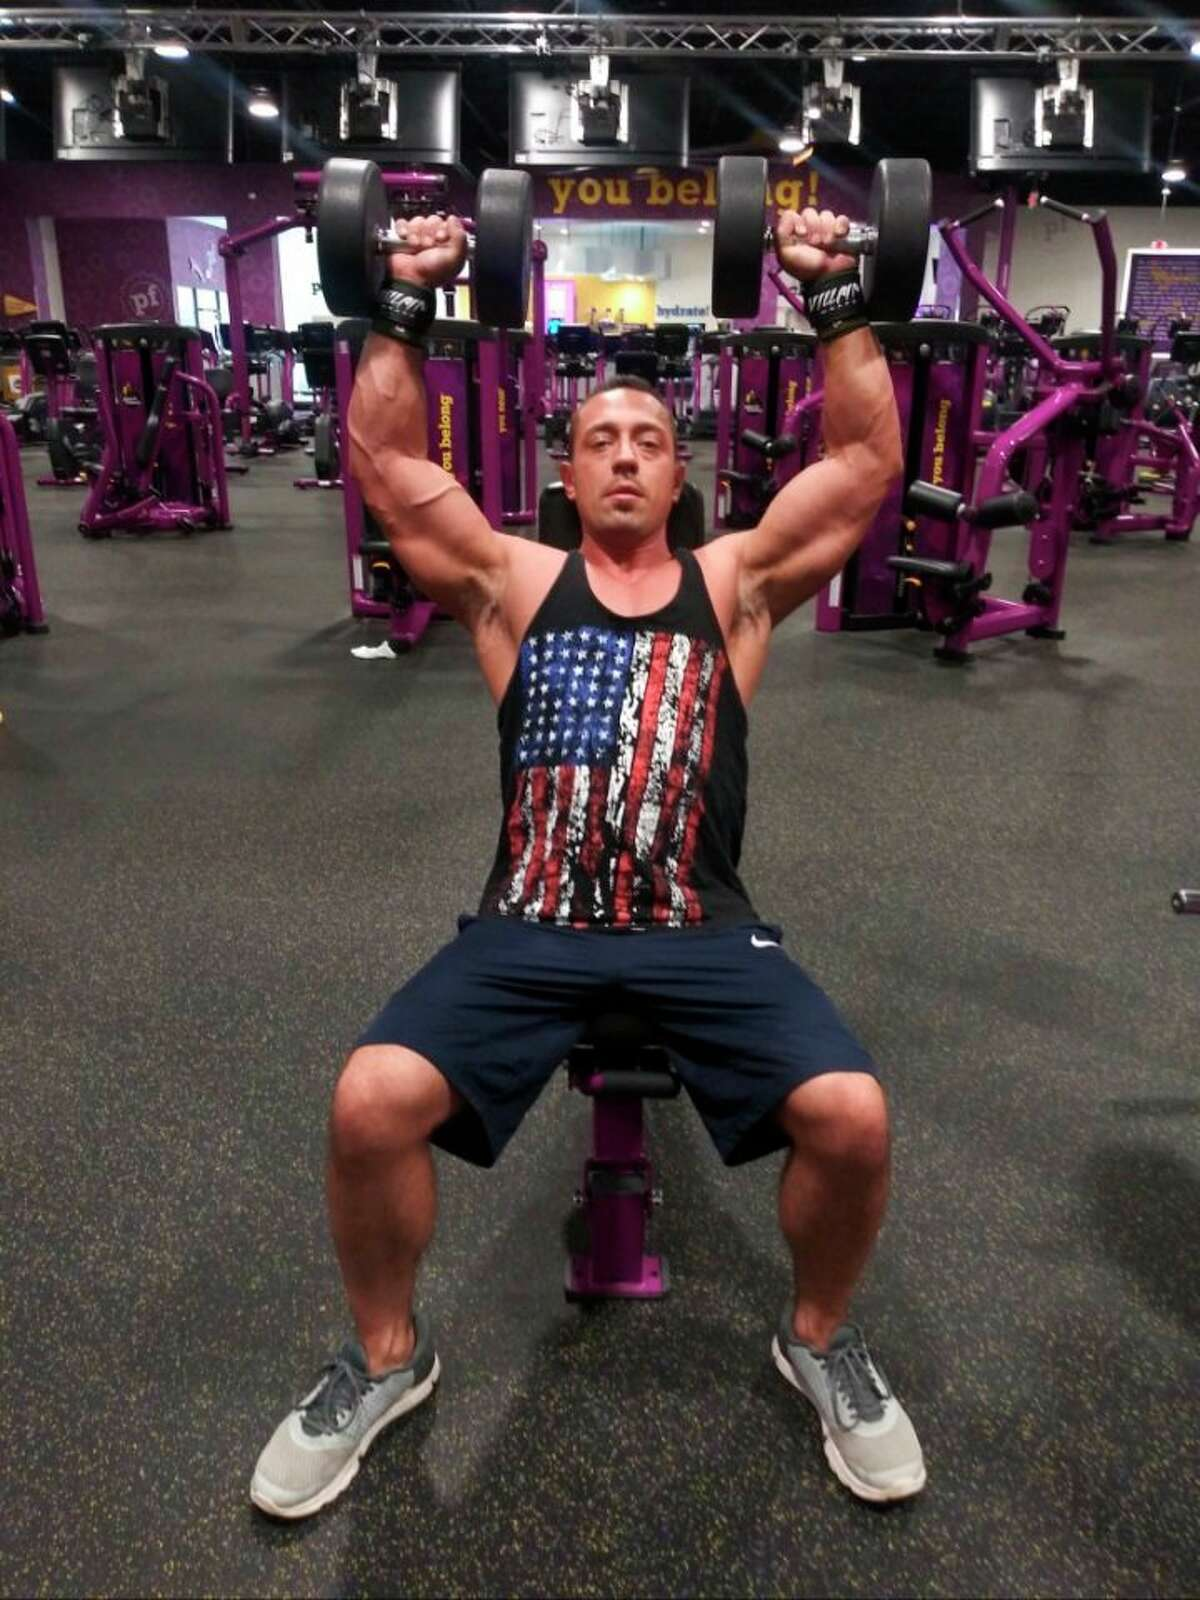 Midland resident Steven Sian is competing in the Mr. Health & Fitness competition in Muscle & Fitness Magazine. (Photo provided)